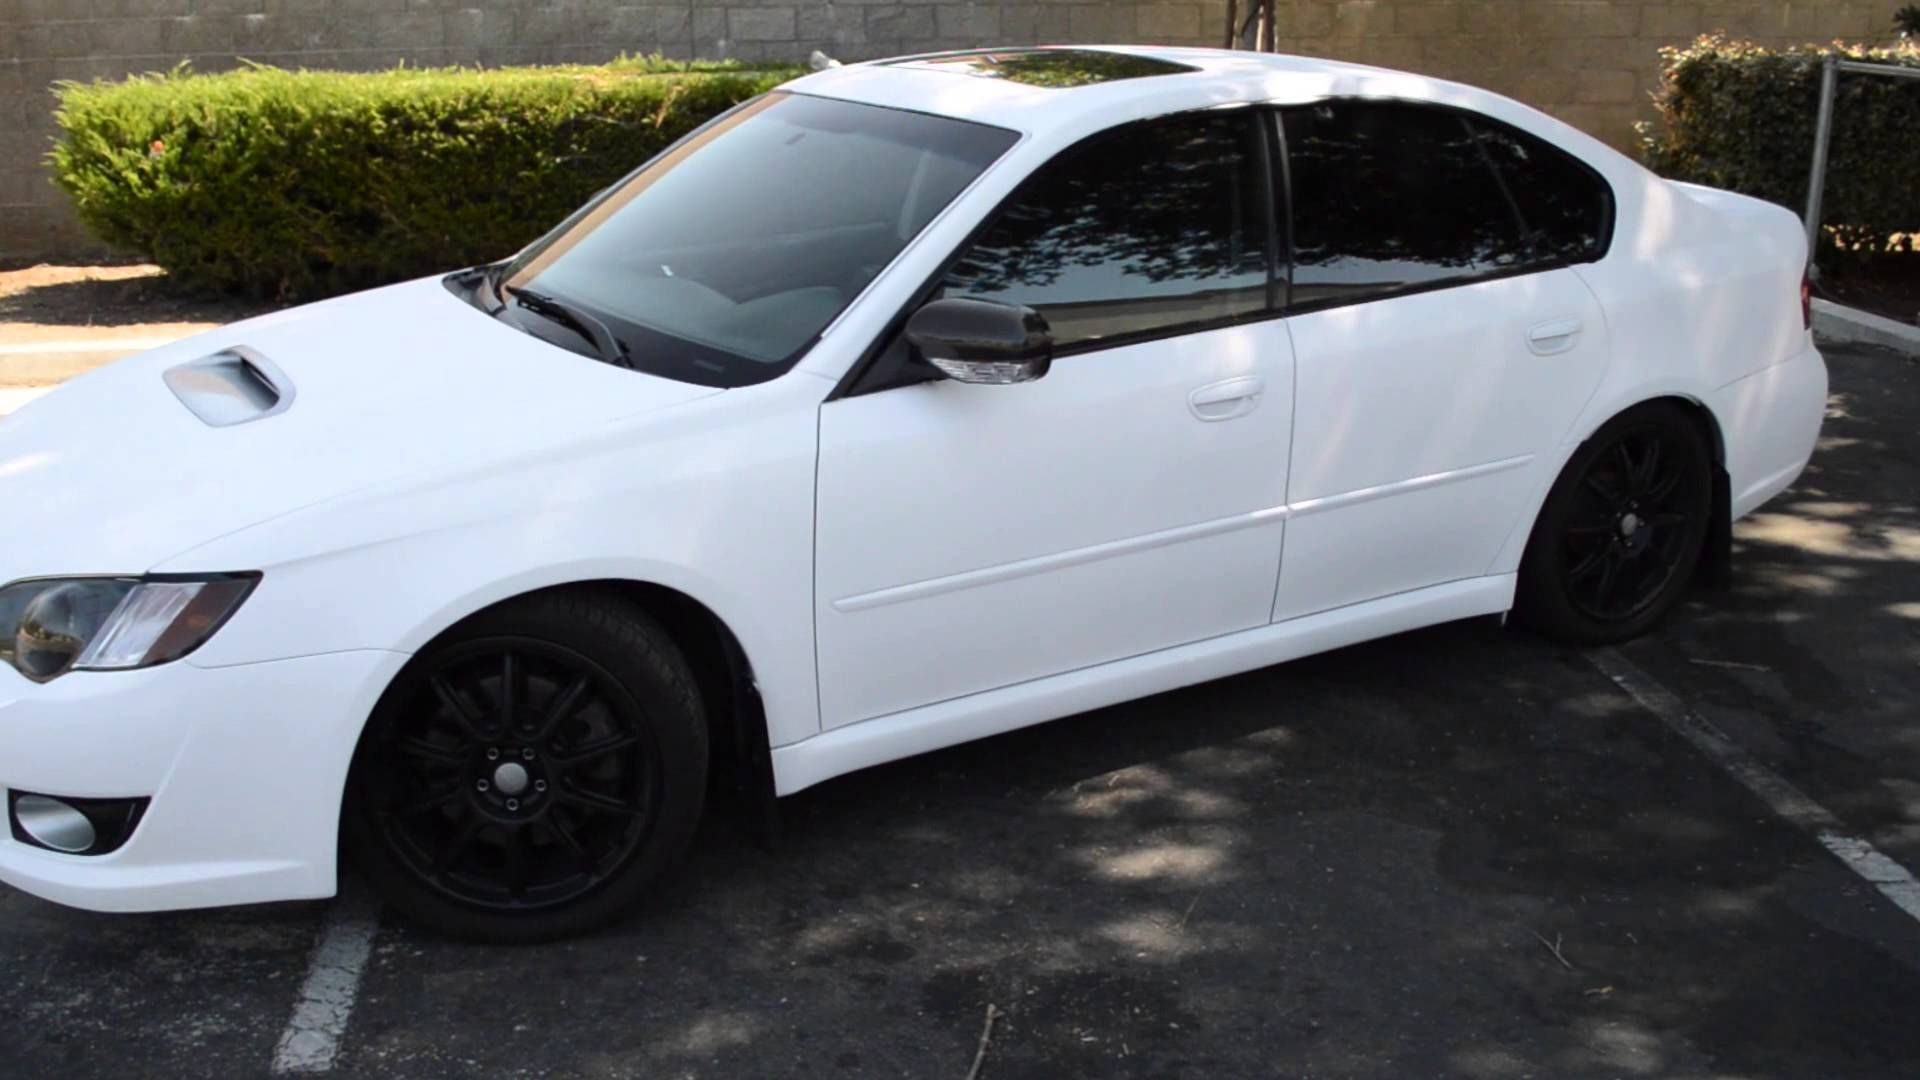 Youtube video: Plasti Dip Matte White ( Subaru Legacy Gt